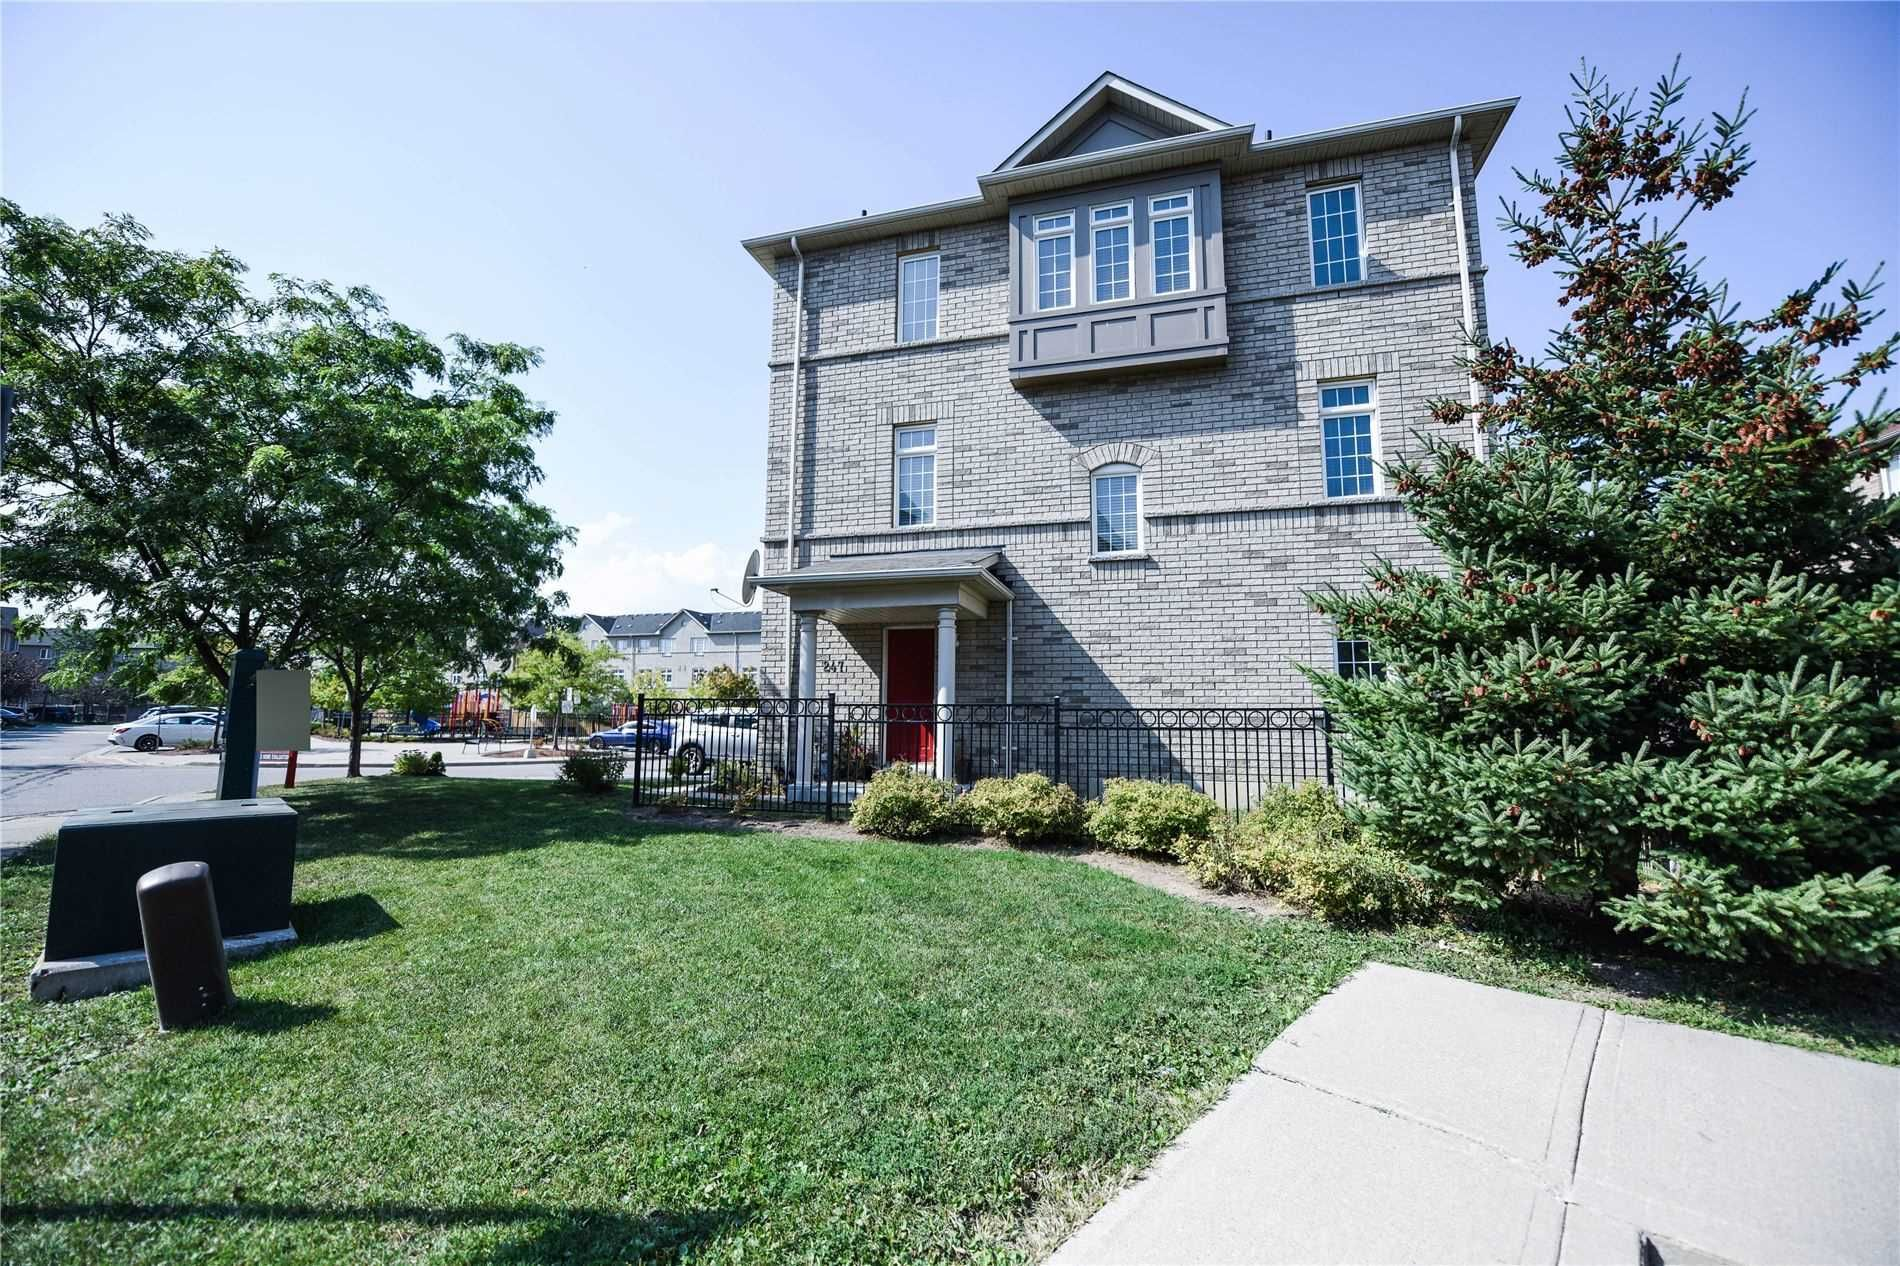 247-7035 Rexwood Road for sale